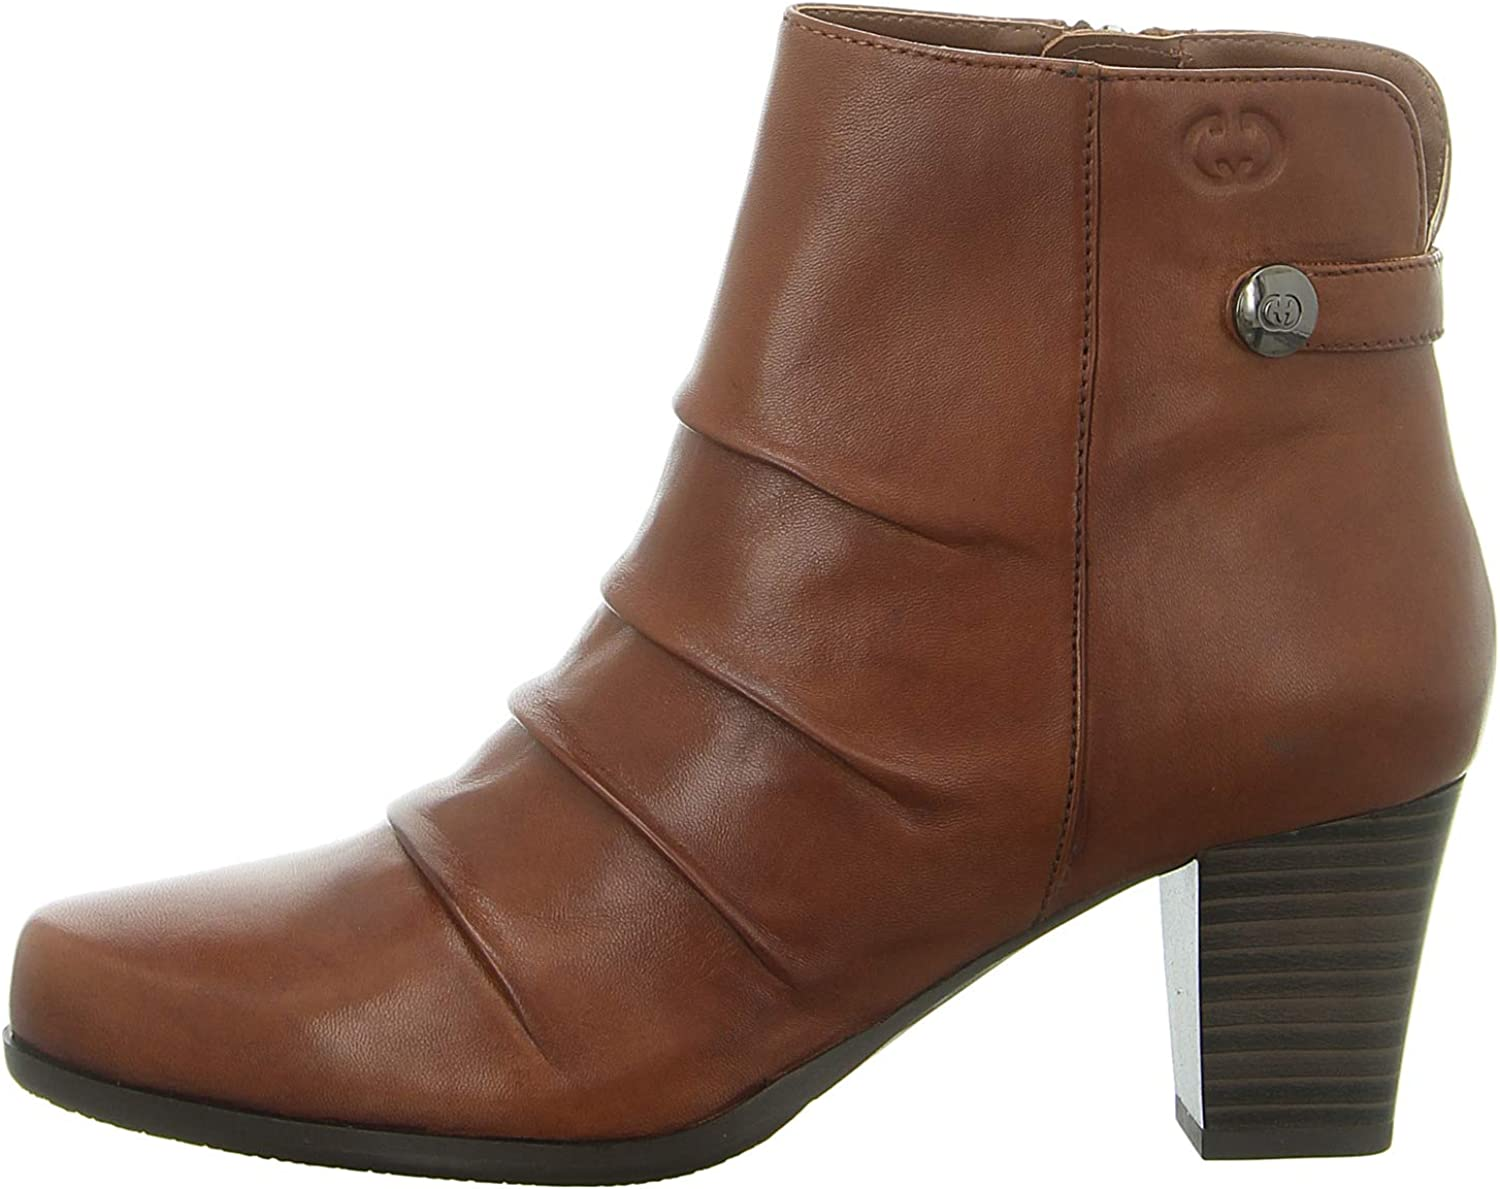 Gerry Weber Women Ankle Boots Brown, (Cognac) G13219MI90 370